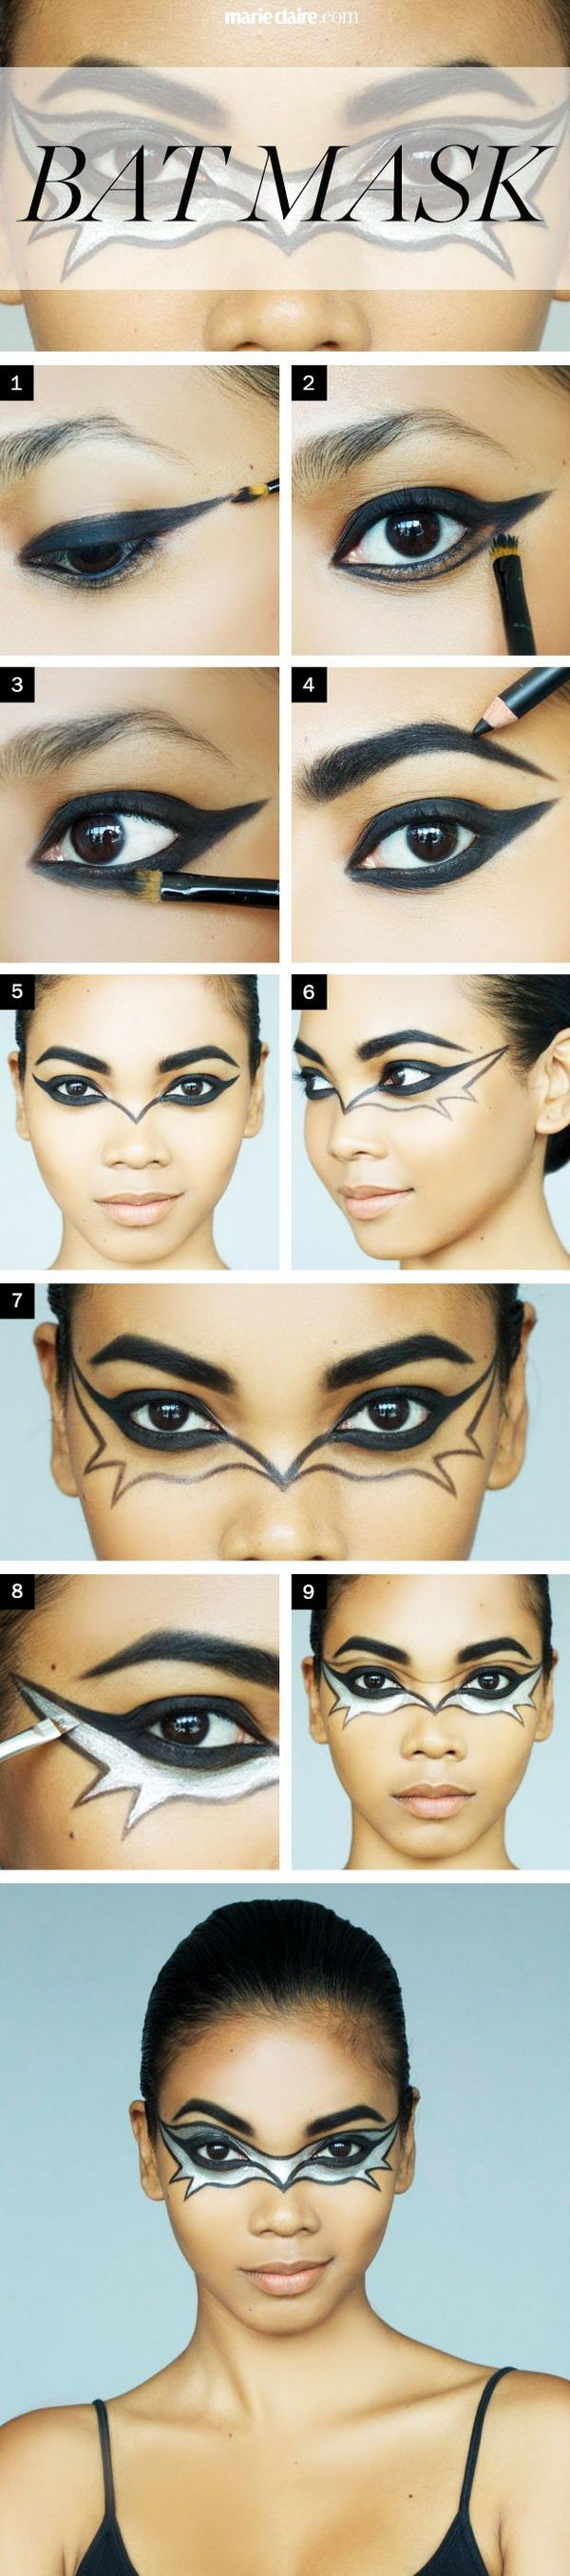 25+ Super Cool Step by Step Makeup Tutorials for Halloween